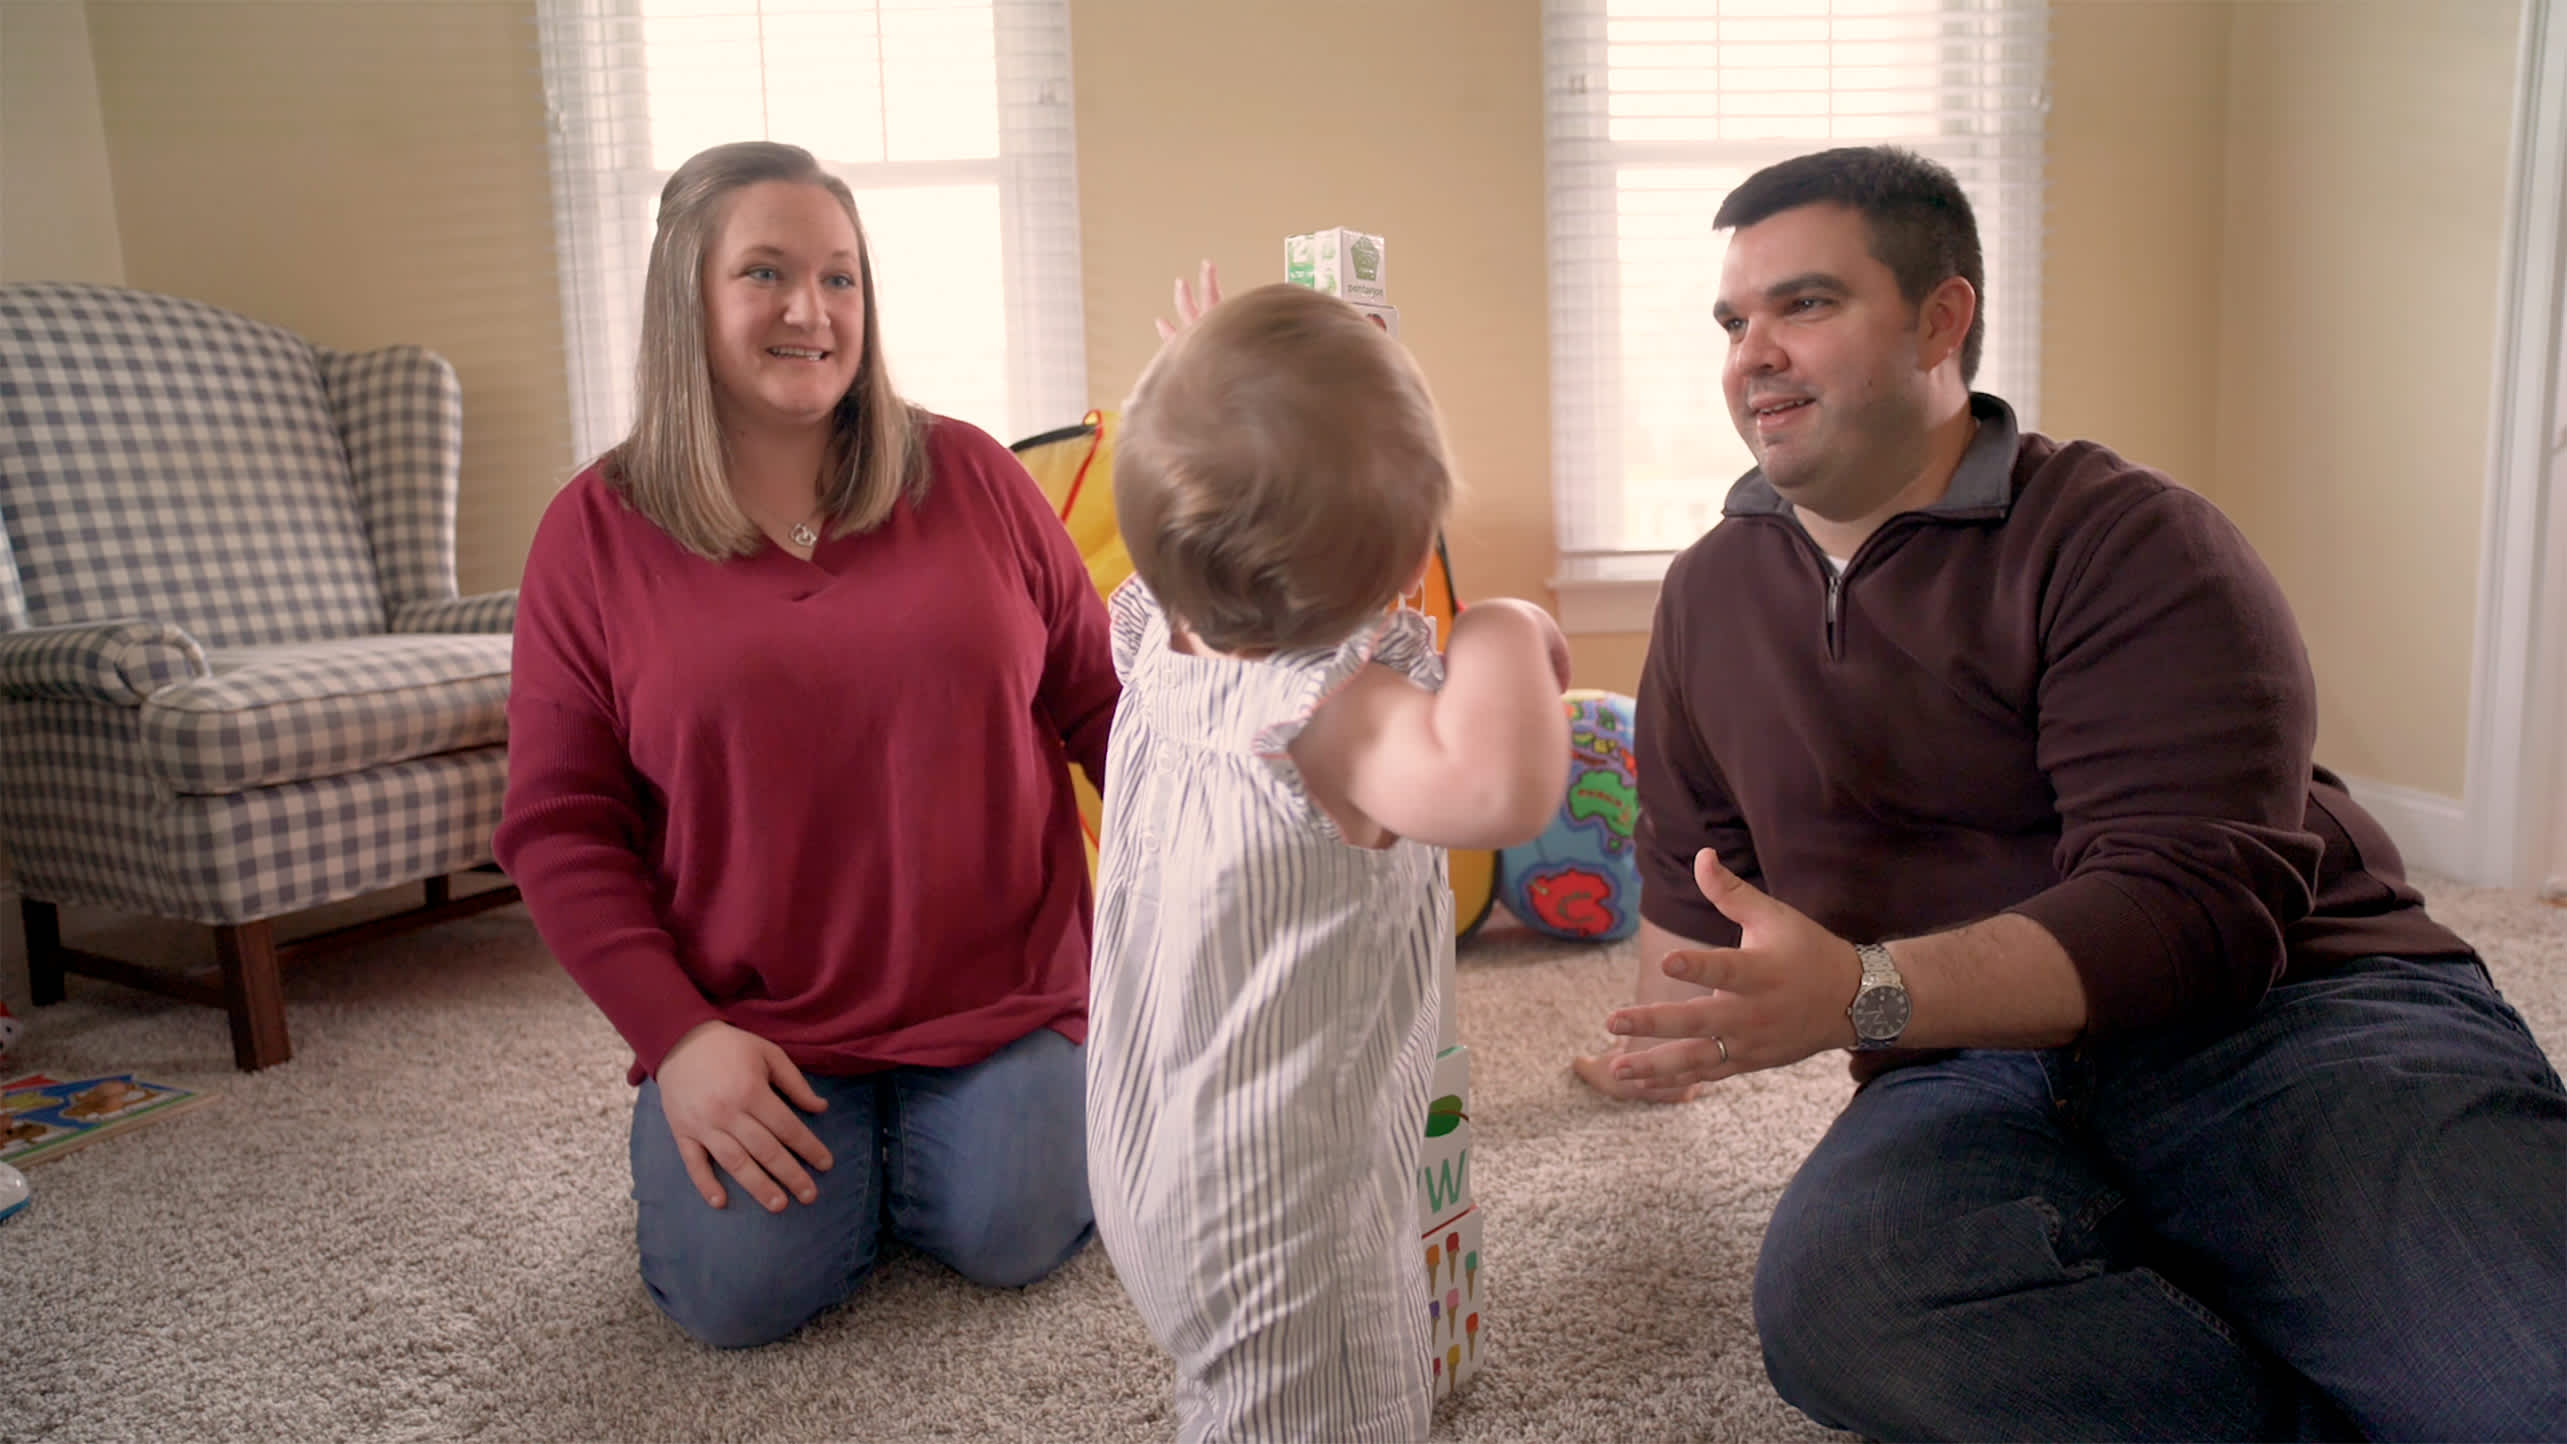 A mother and father play with their baby daughter.